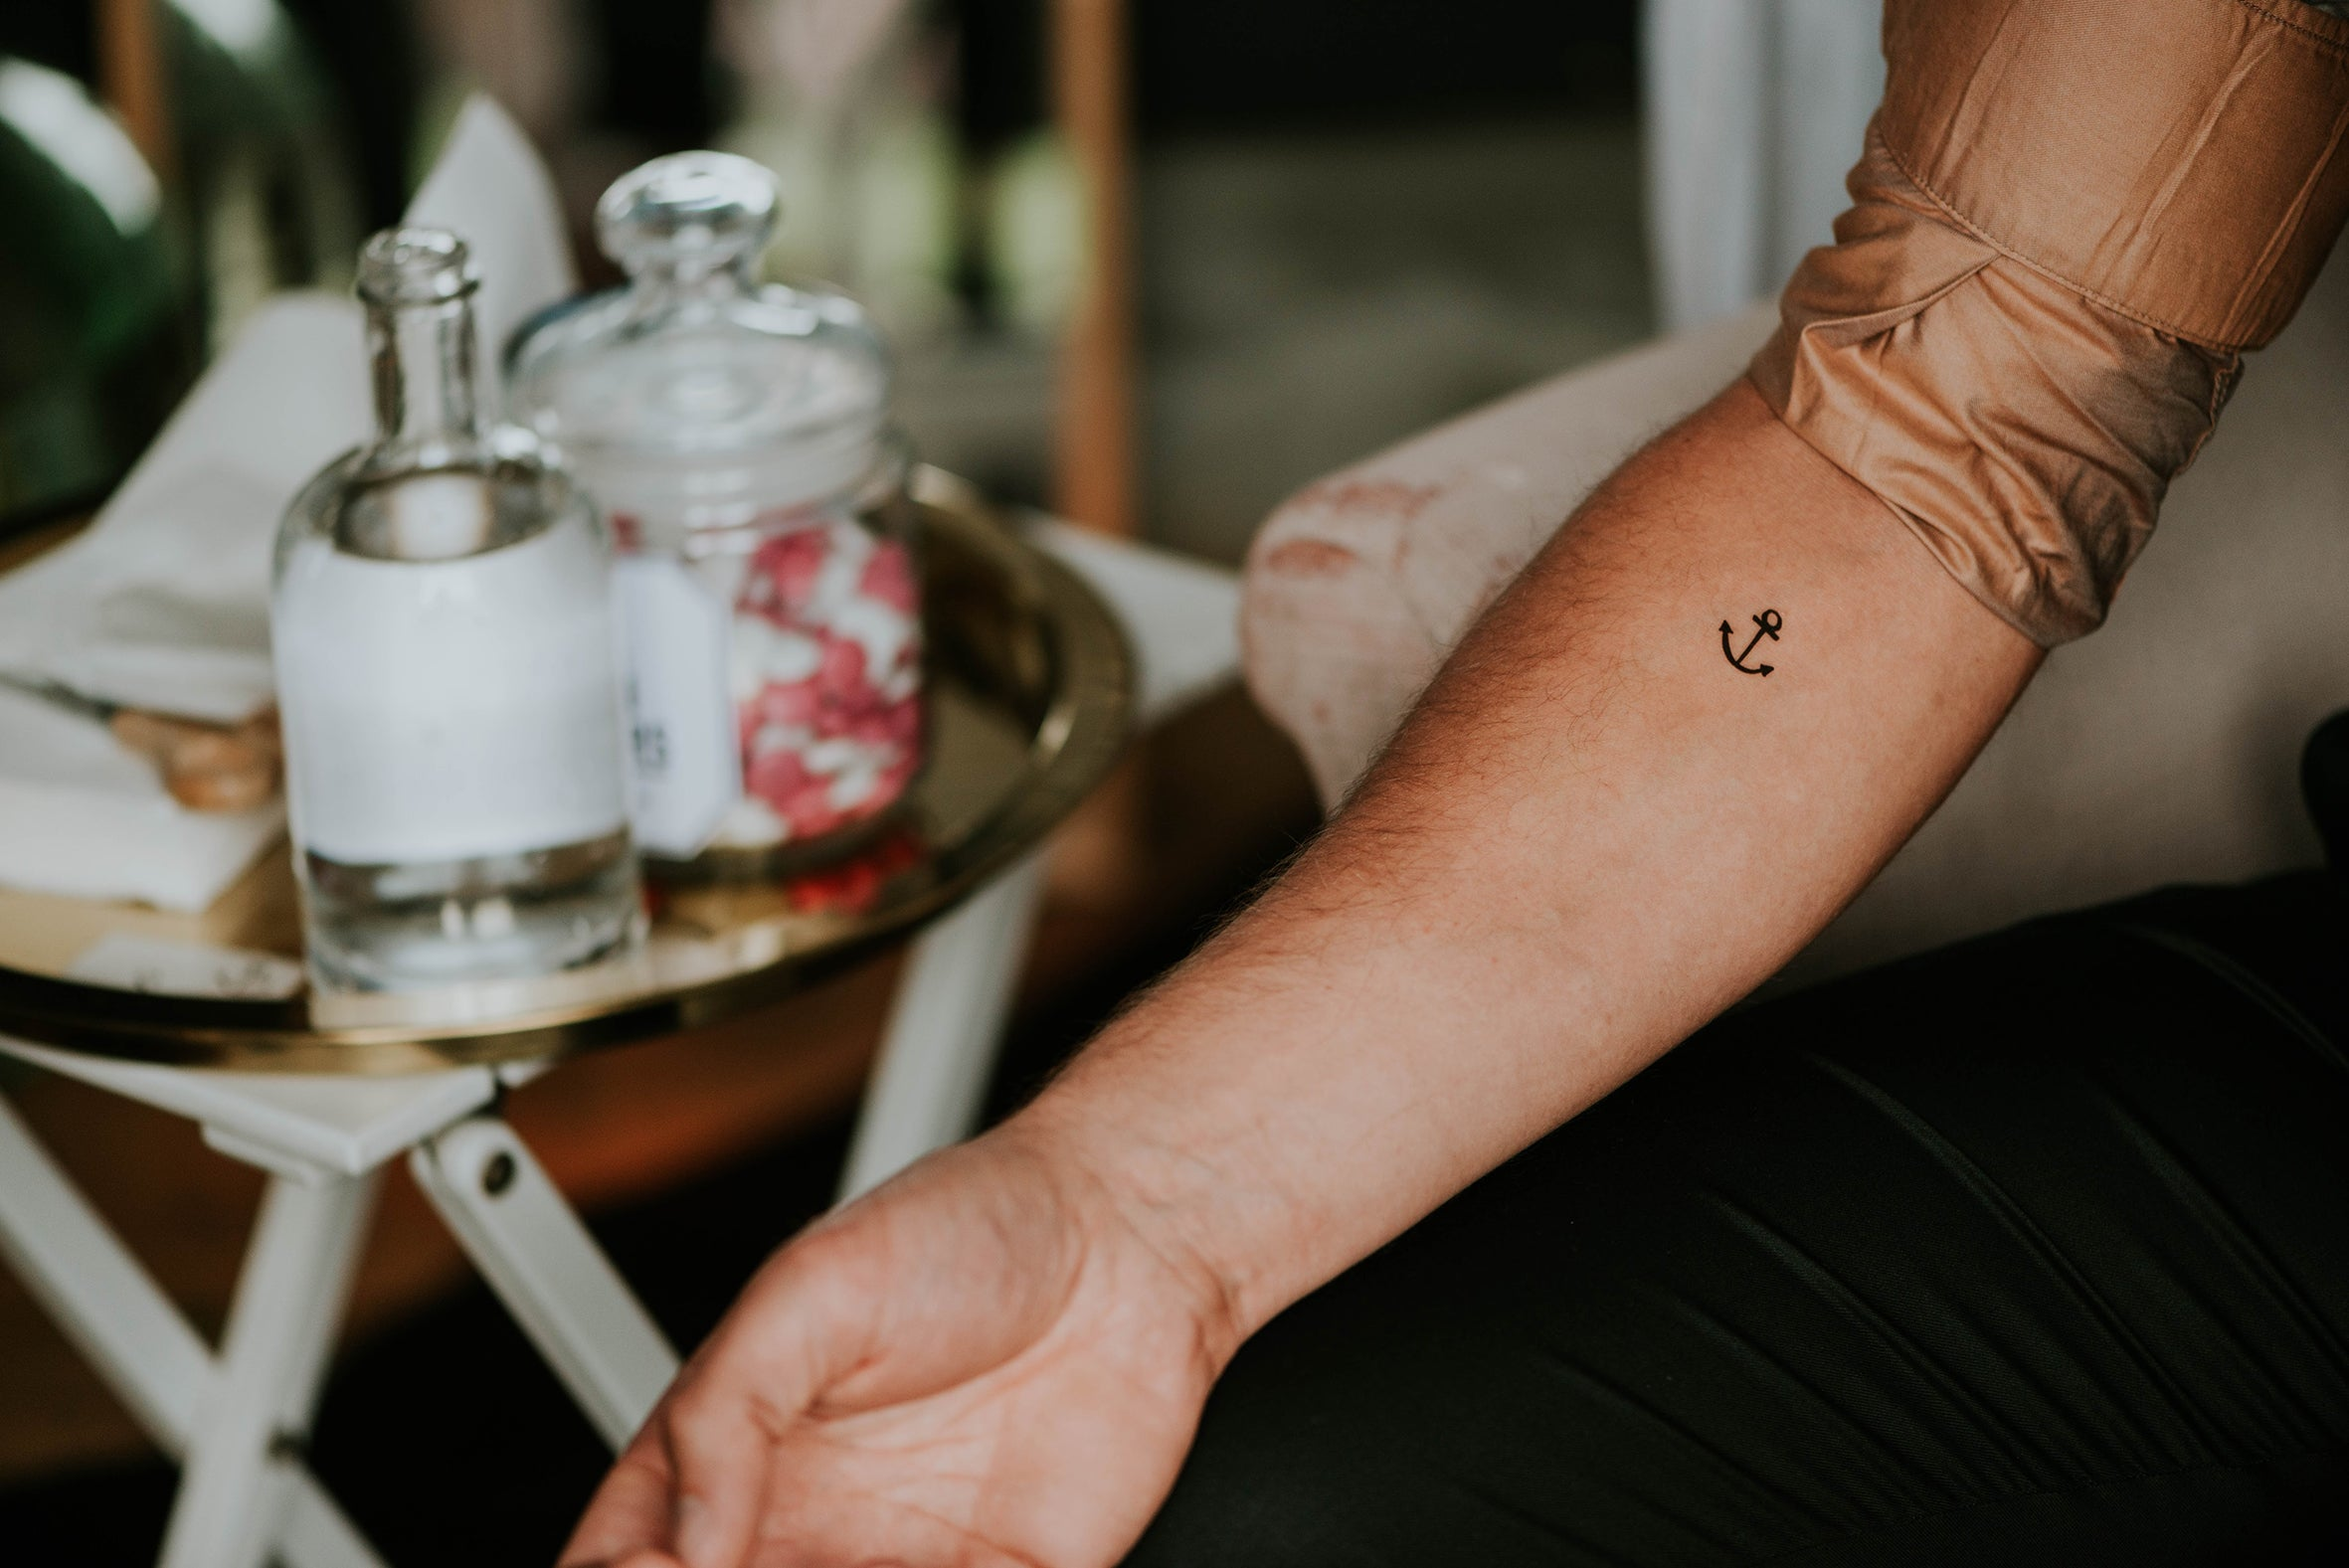 Tattoo Events Young Smitten Temporary Tattoos